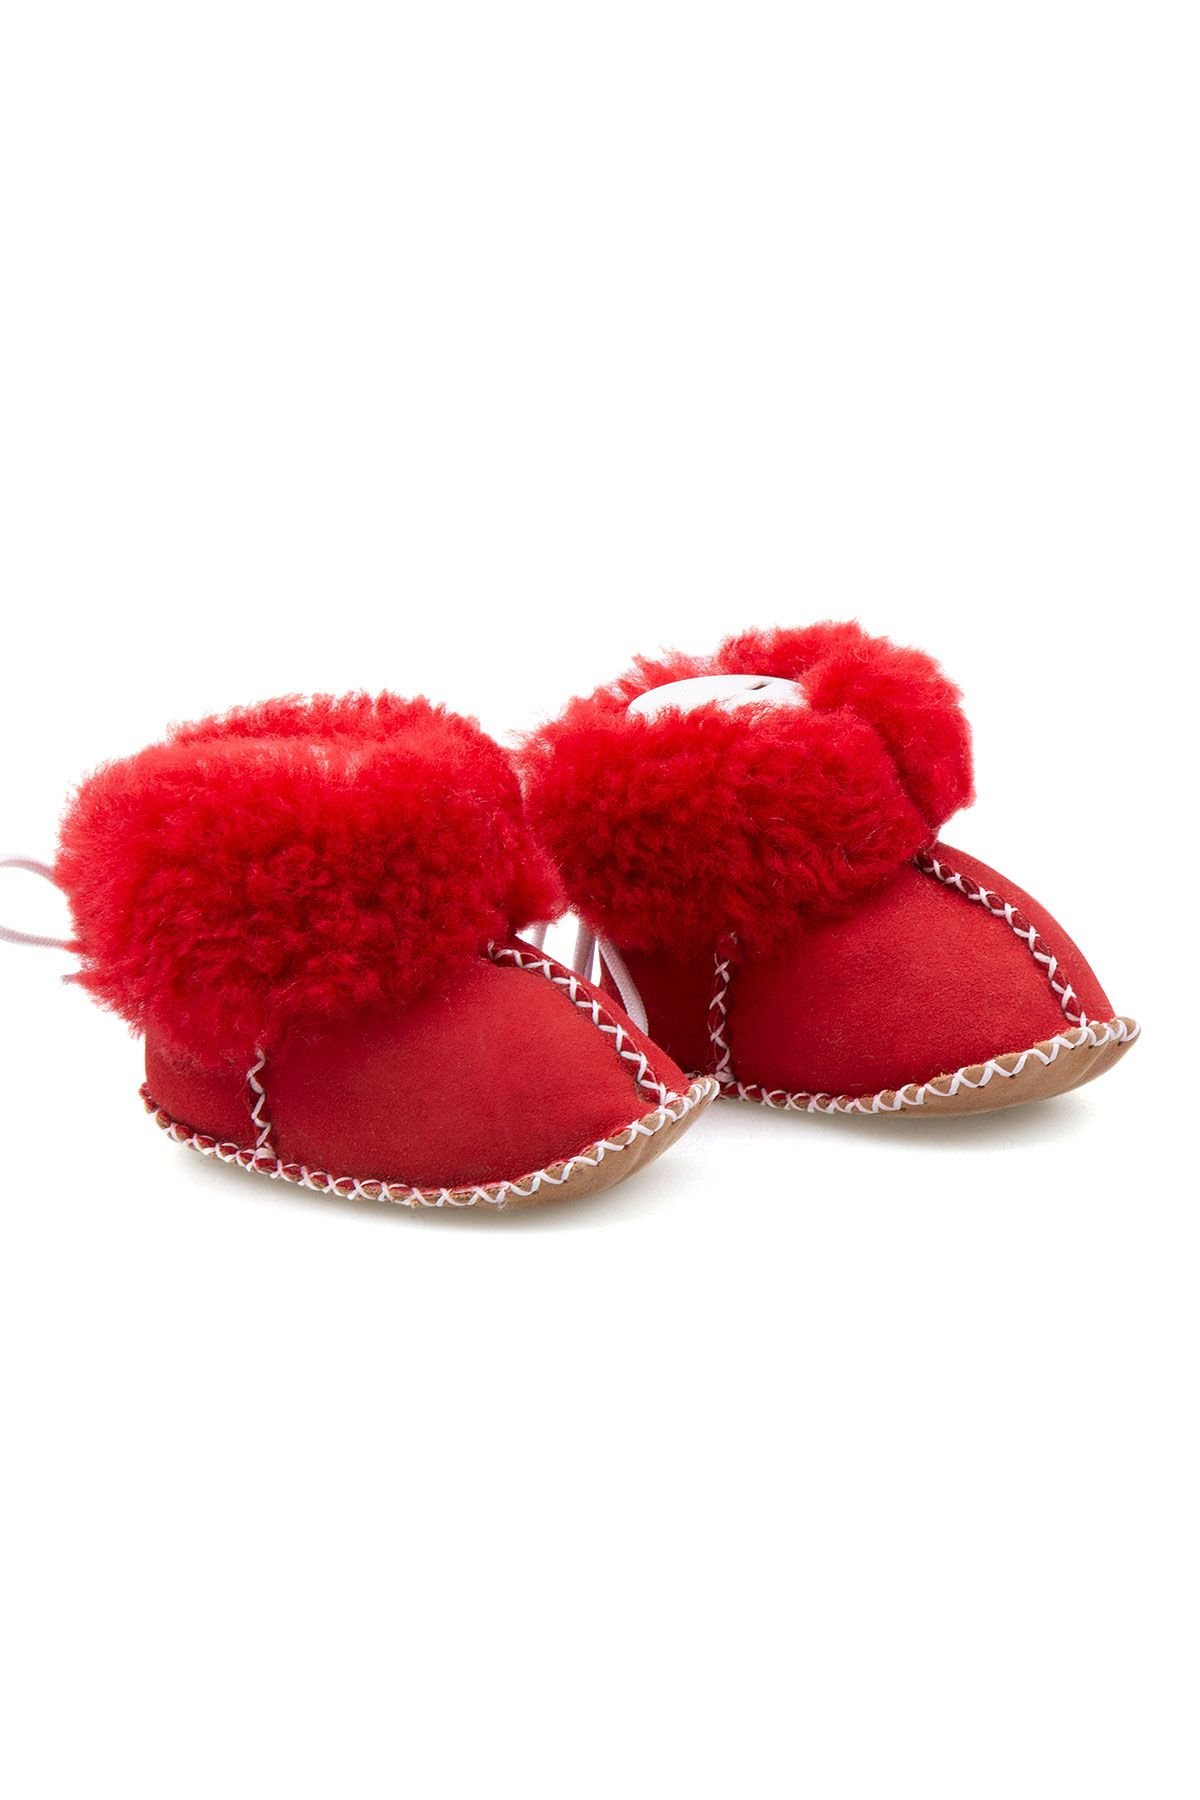 Pegia Shearling Baby's Booties 141113 Red